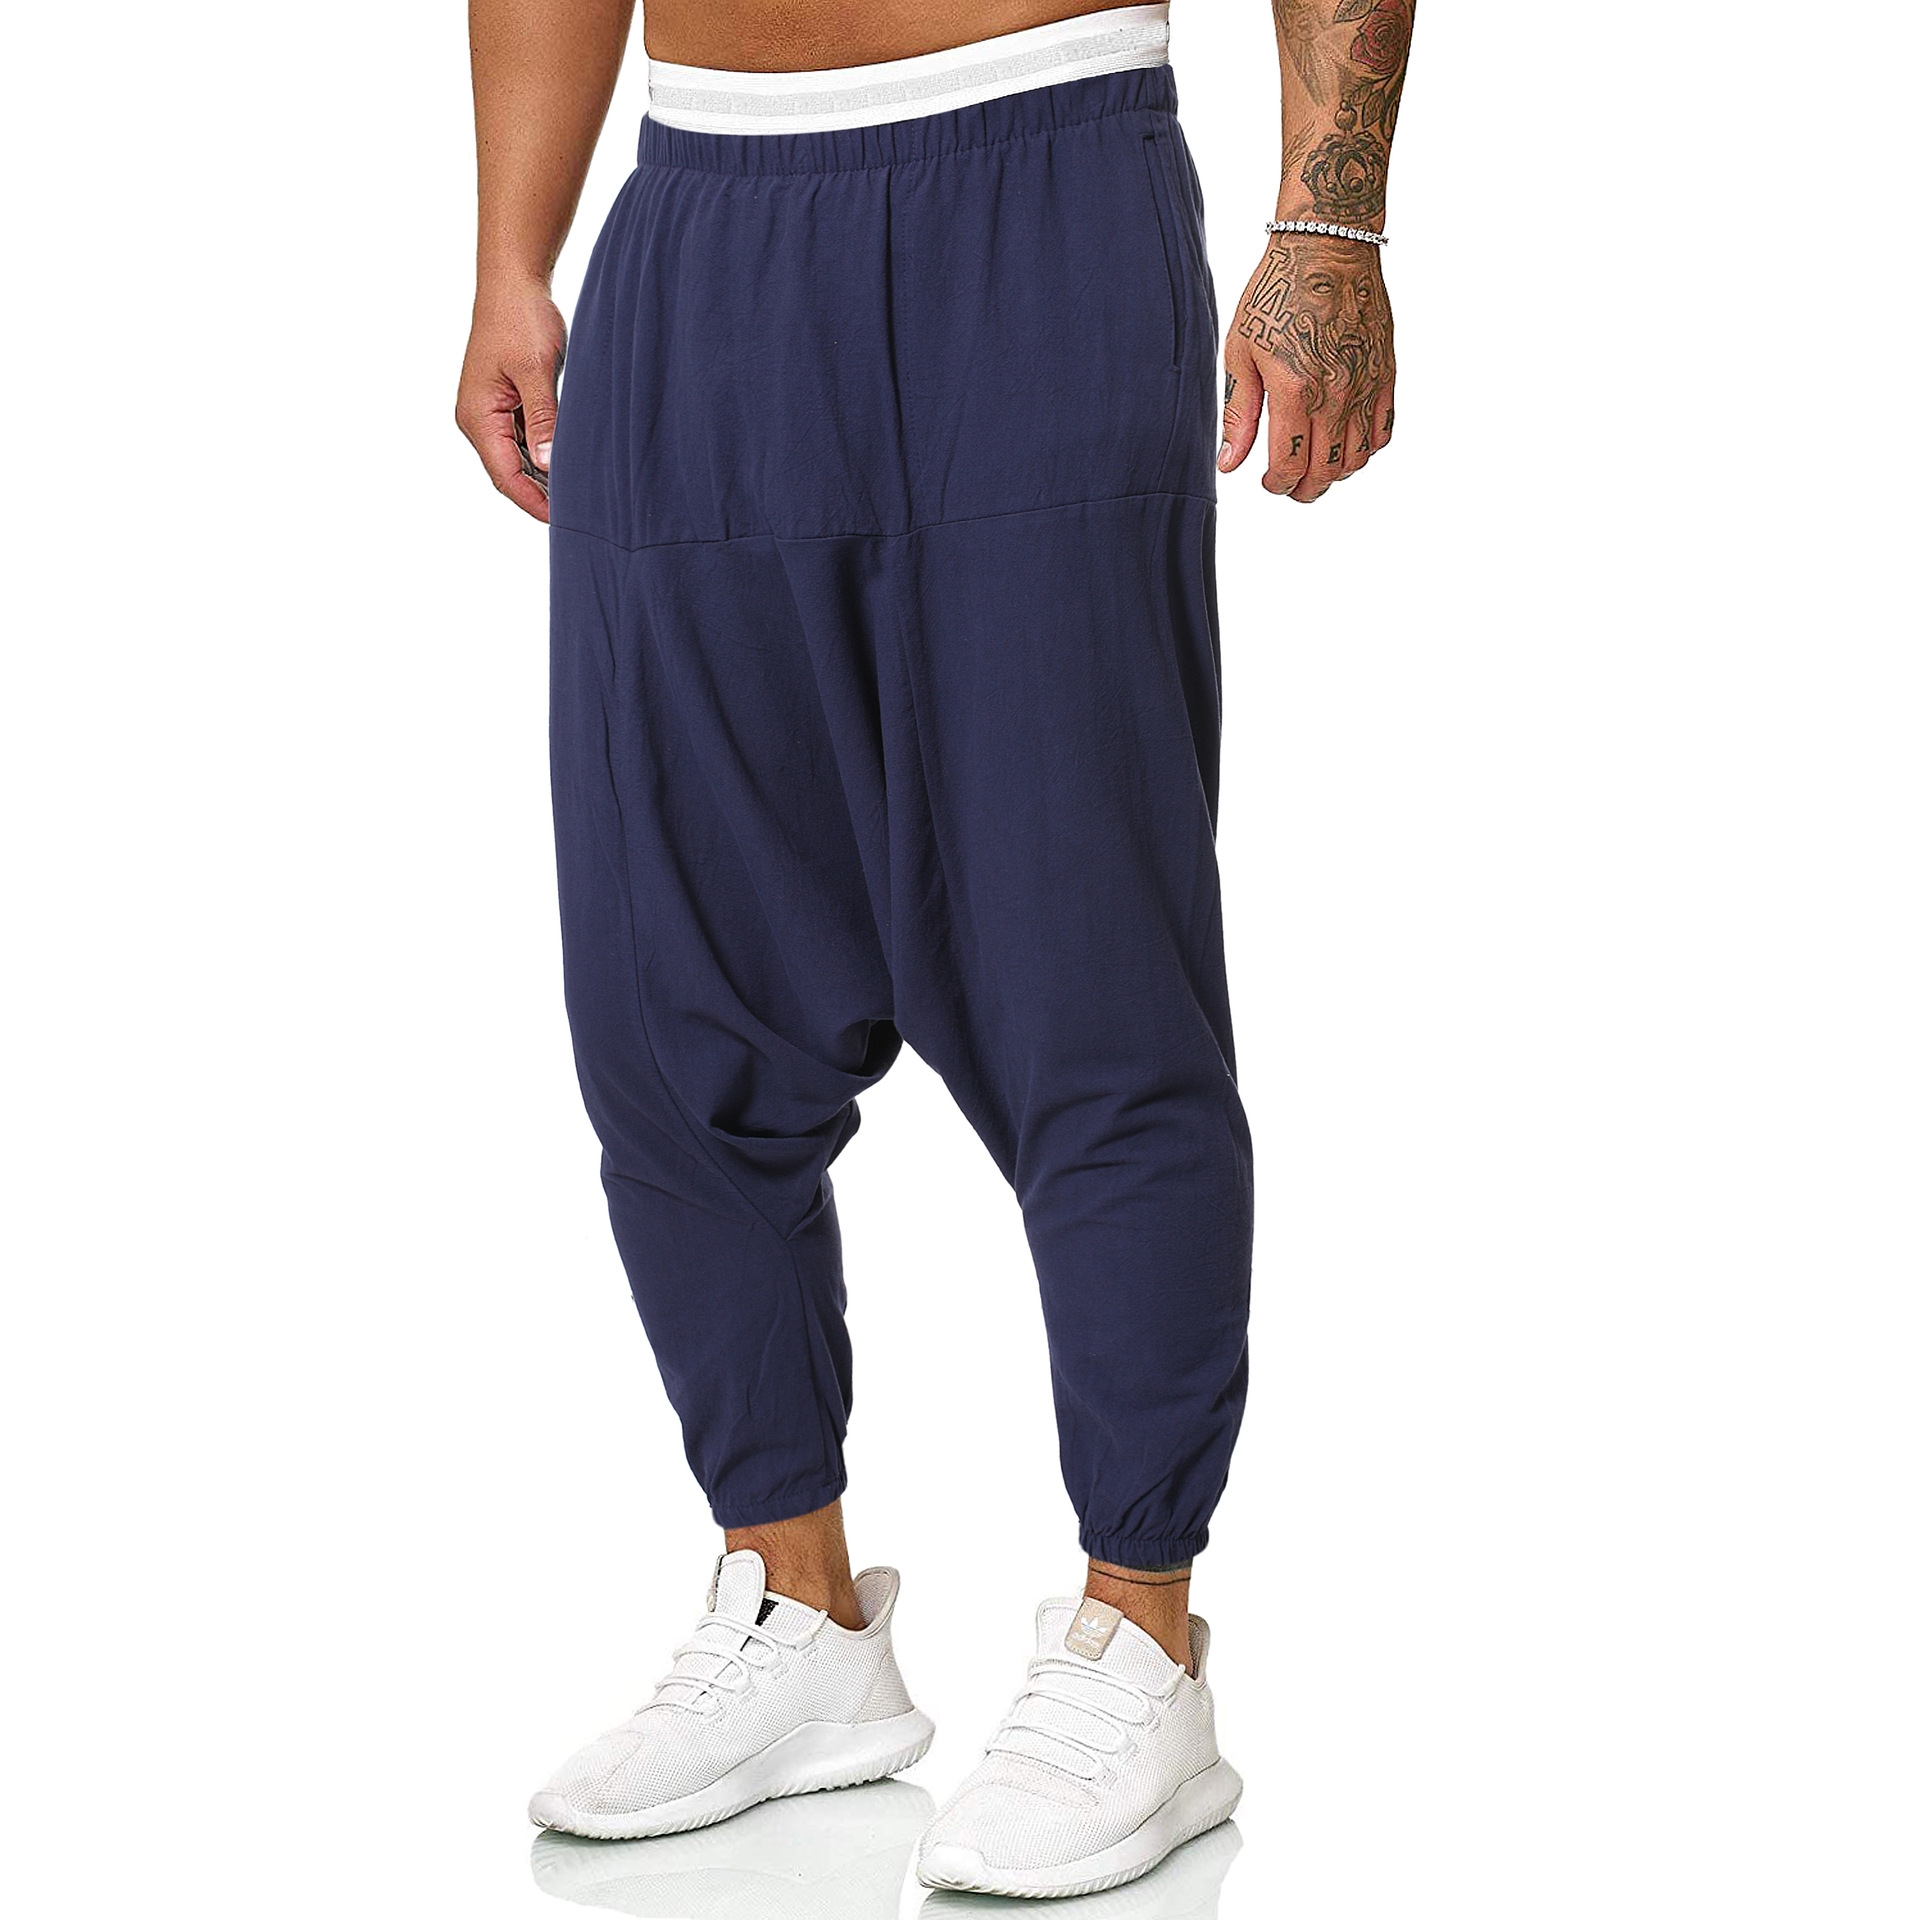 Men's European And American Fashion Trend Cotton And Linen Casual Cross-file Pants